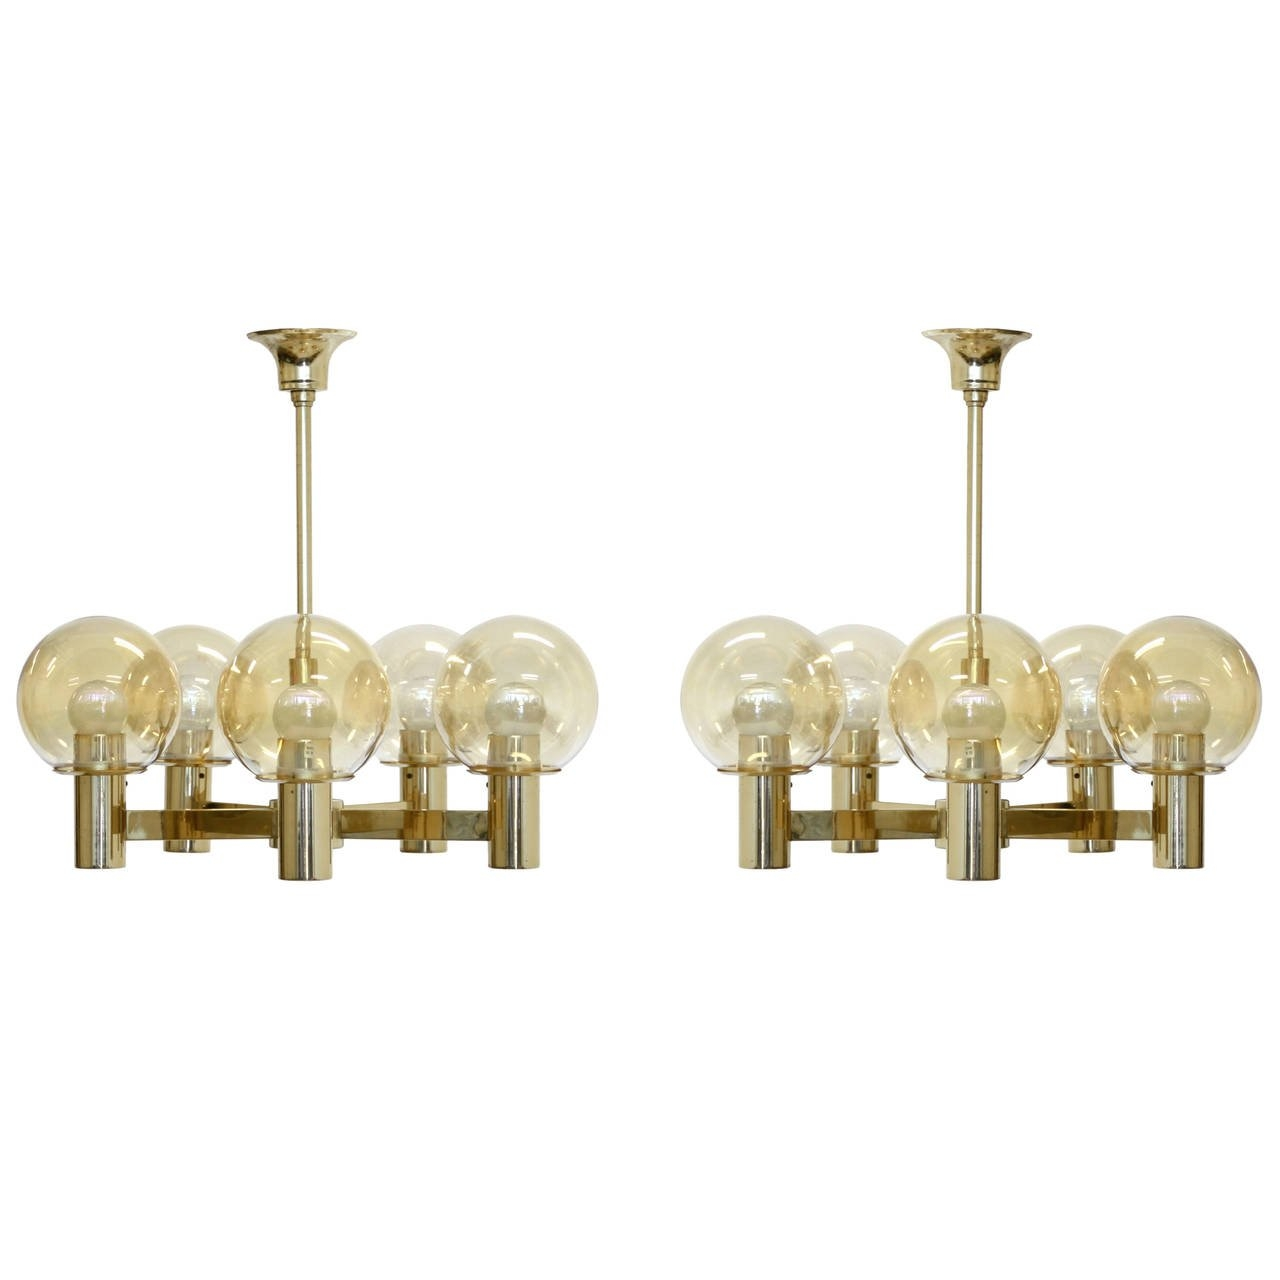 Pair Of Brass Chandeliers Hvik Lys At 1stdibs Pertaining To Brass Chandeliers (#9 of 12)